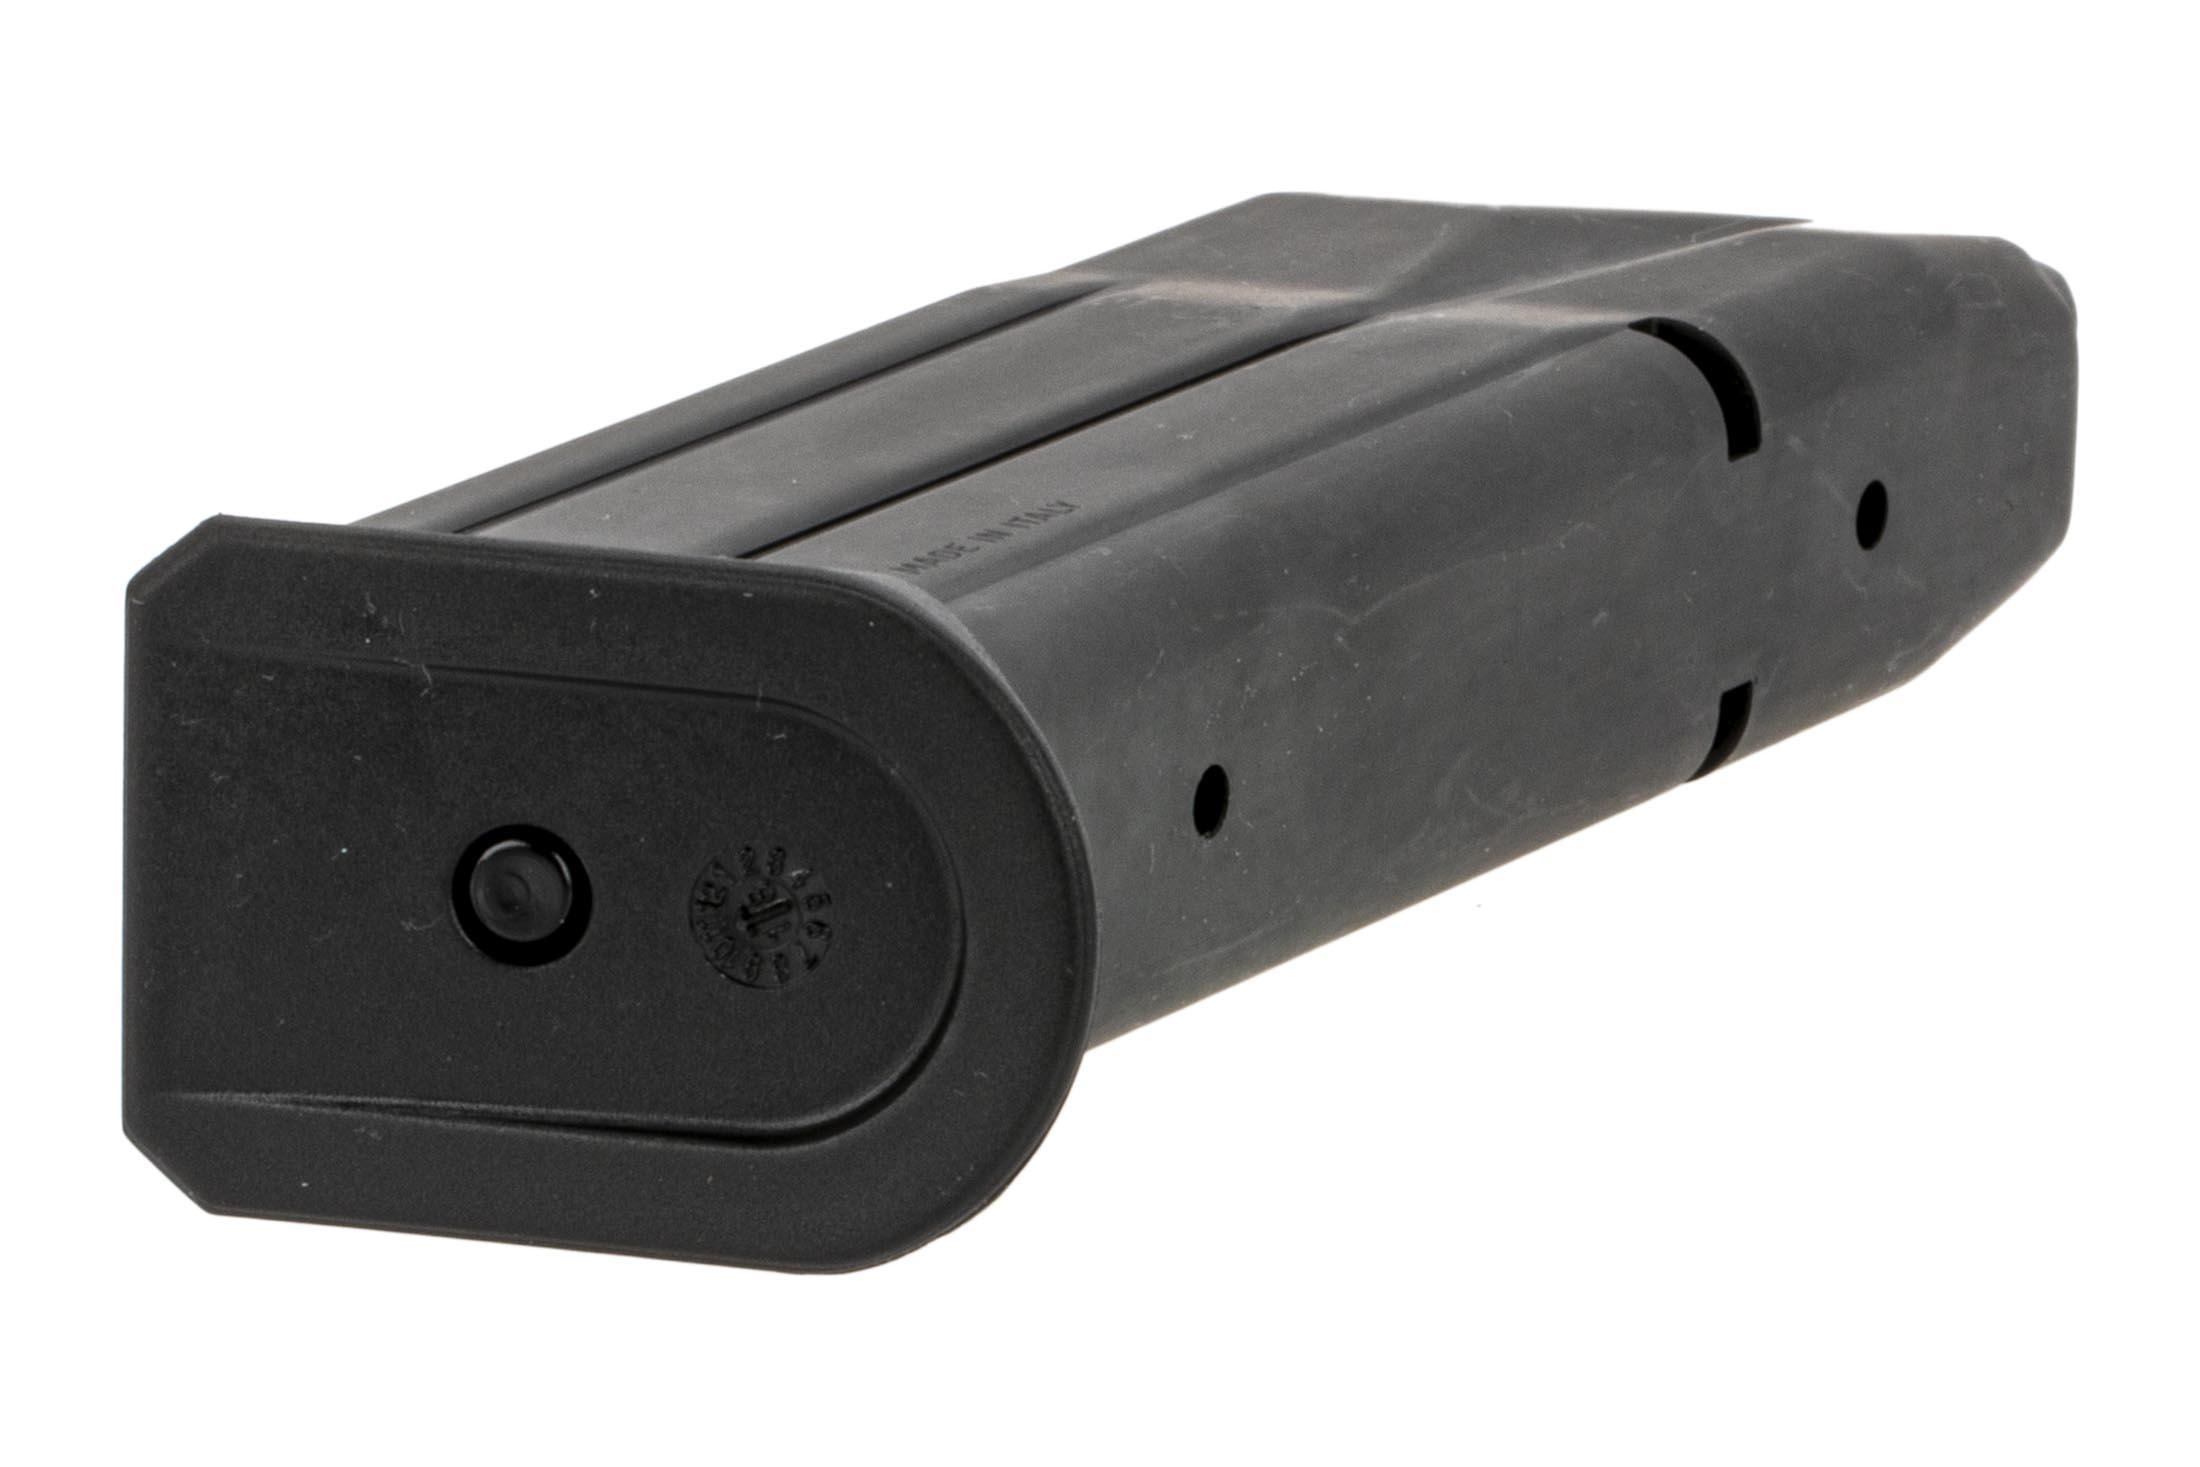 SIG Sauer P229 magazine holds 15-rounds of 9mm Auto ammo with witness holes and easy disassembly.